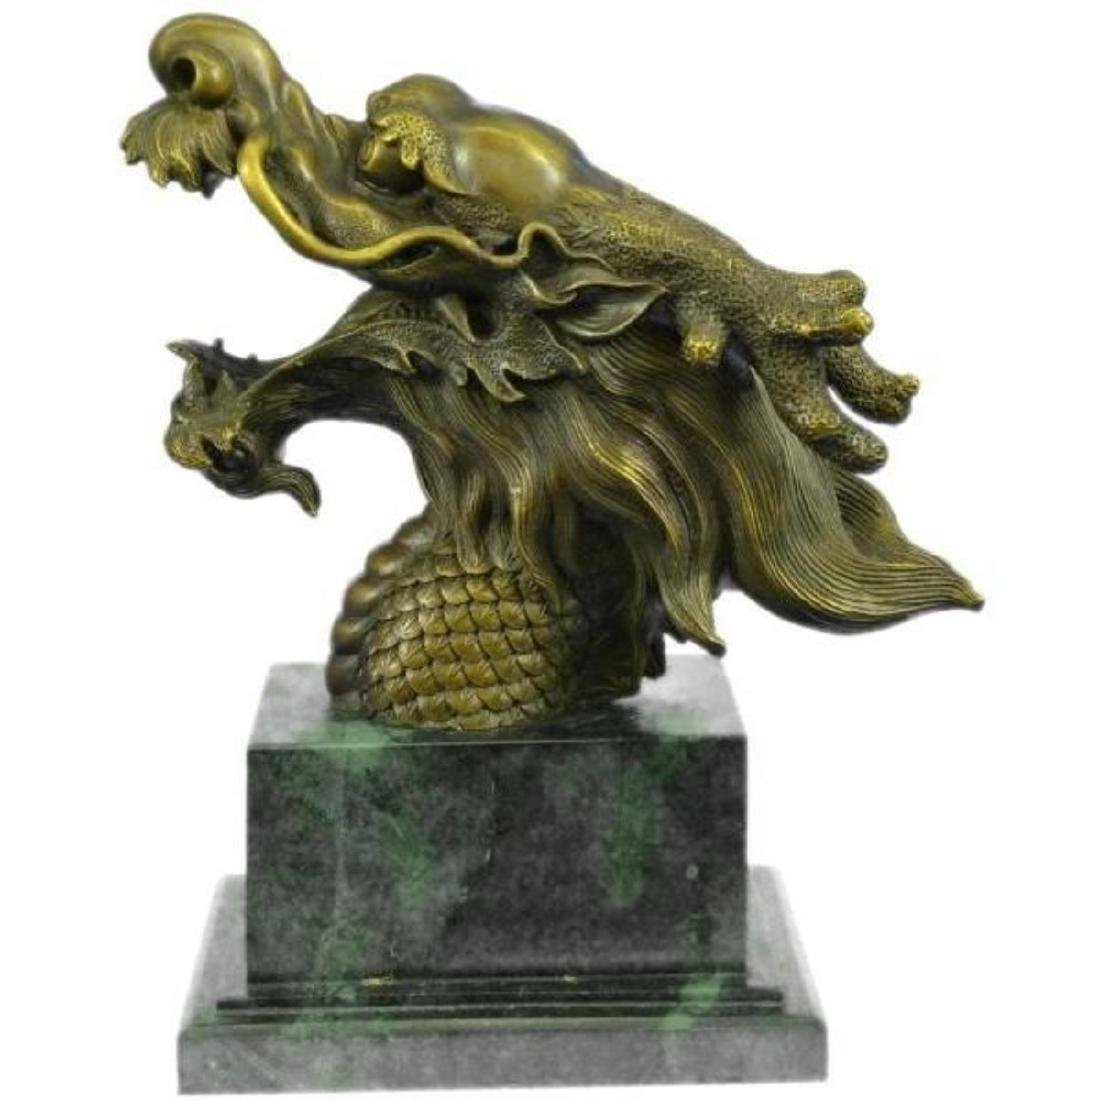 Hot Cast Detailed Dragon Head Bronze Sculpture Green - 2